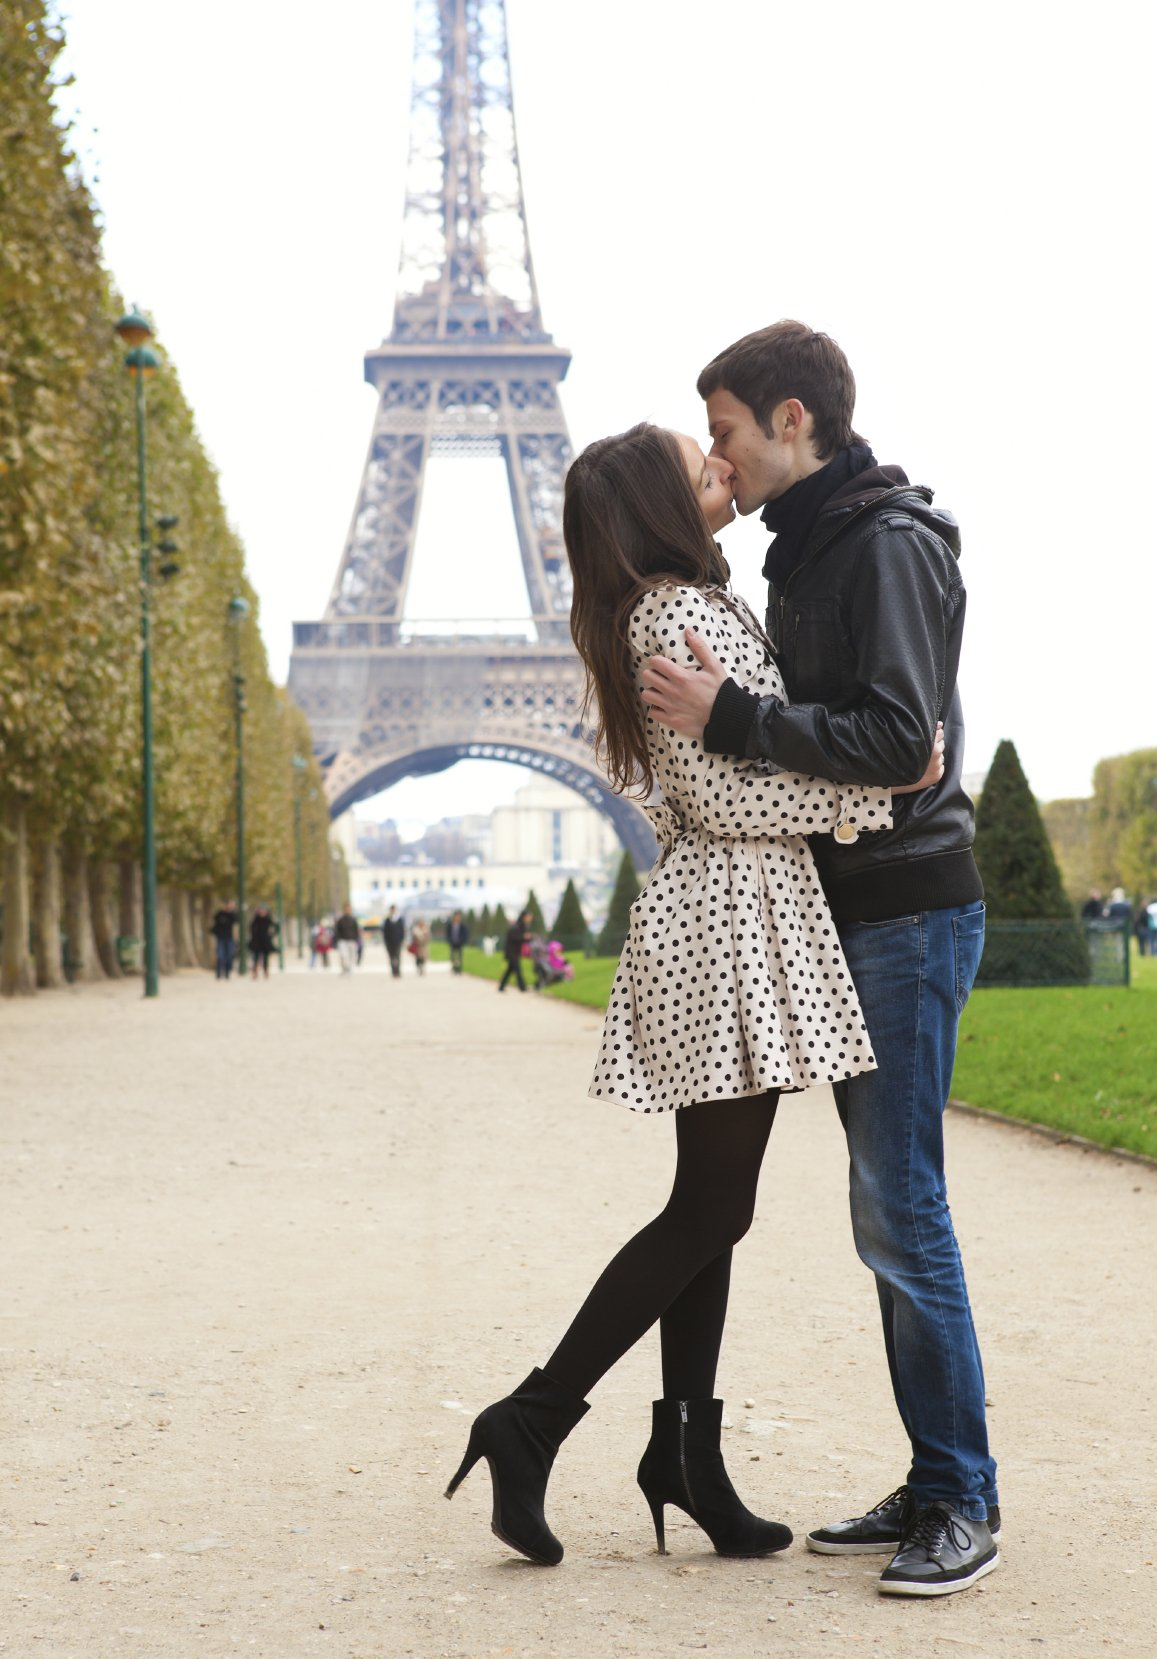 Dating customs in paris